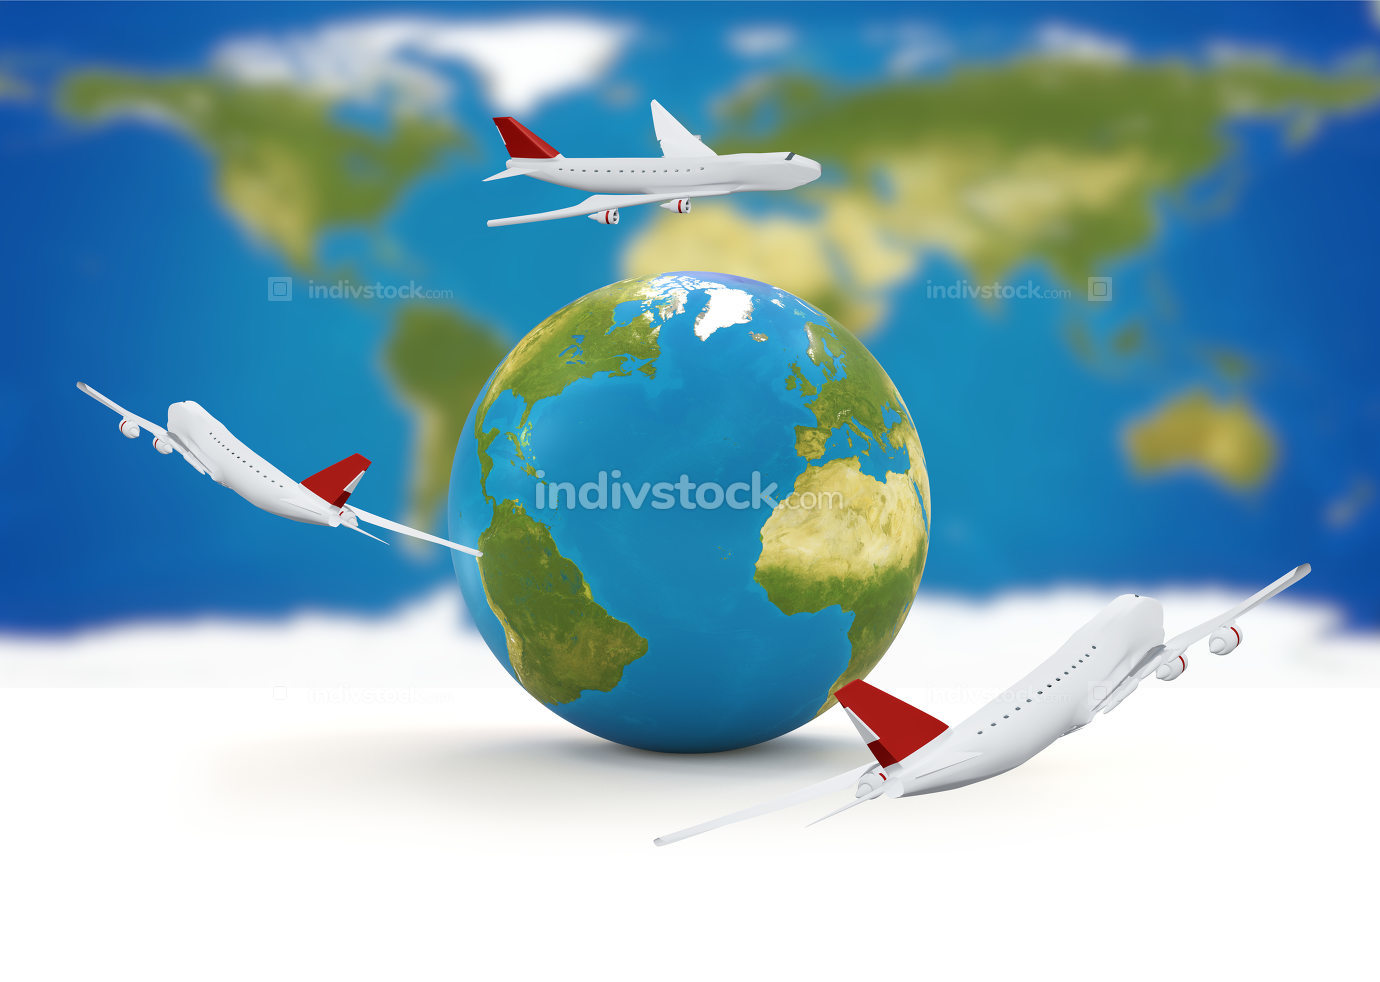 around the world. airplanes earth 3d-illustration. elements of t